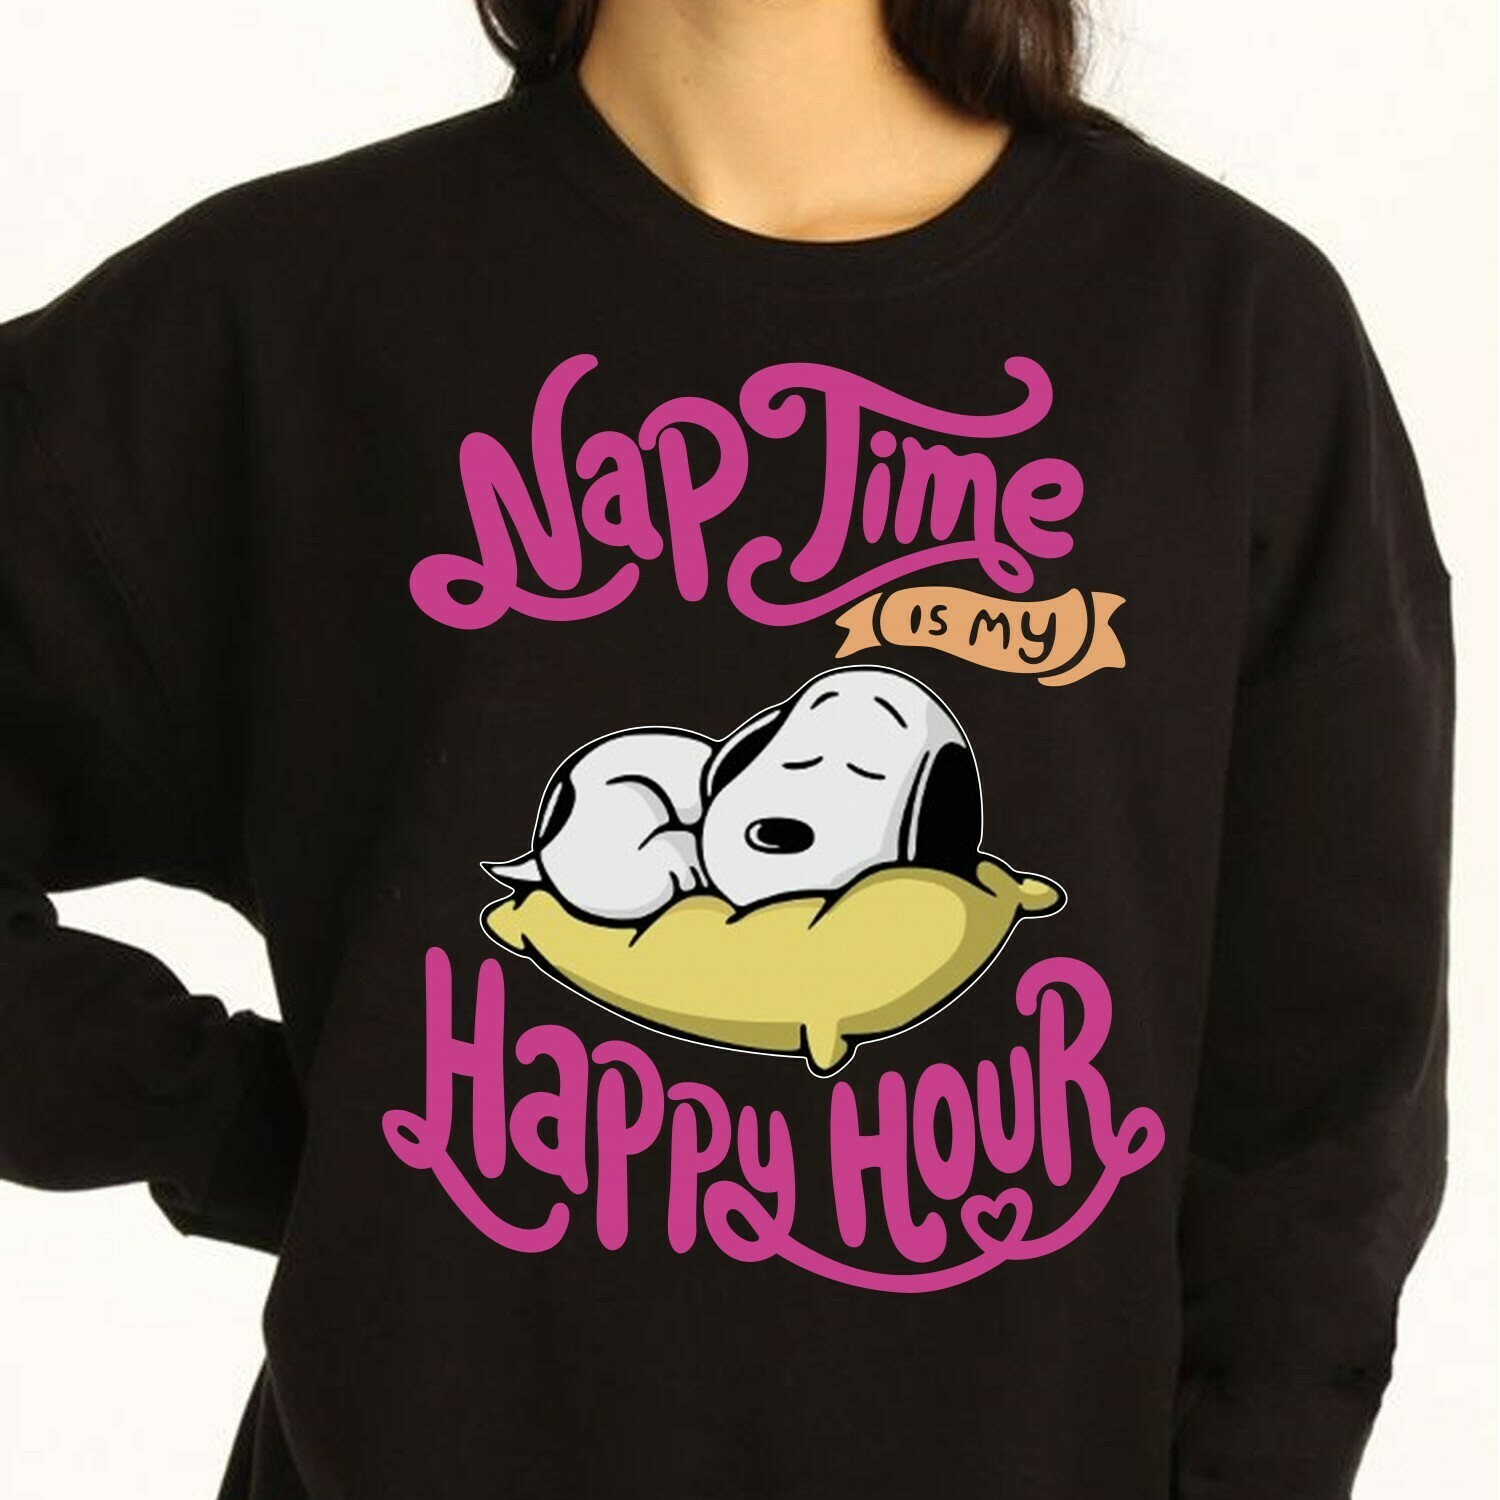 Nap Time Is My Happy Hour snoopy Snoopy taking a sweet nap with his Pillow Peanuts Gang Yard Snoopy Nap Lover Pin T-Shirt Long Sleeve Sweatshirt Hoodie Jolly Family Gifts